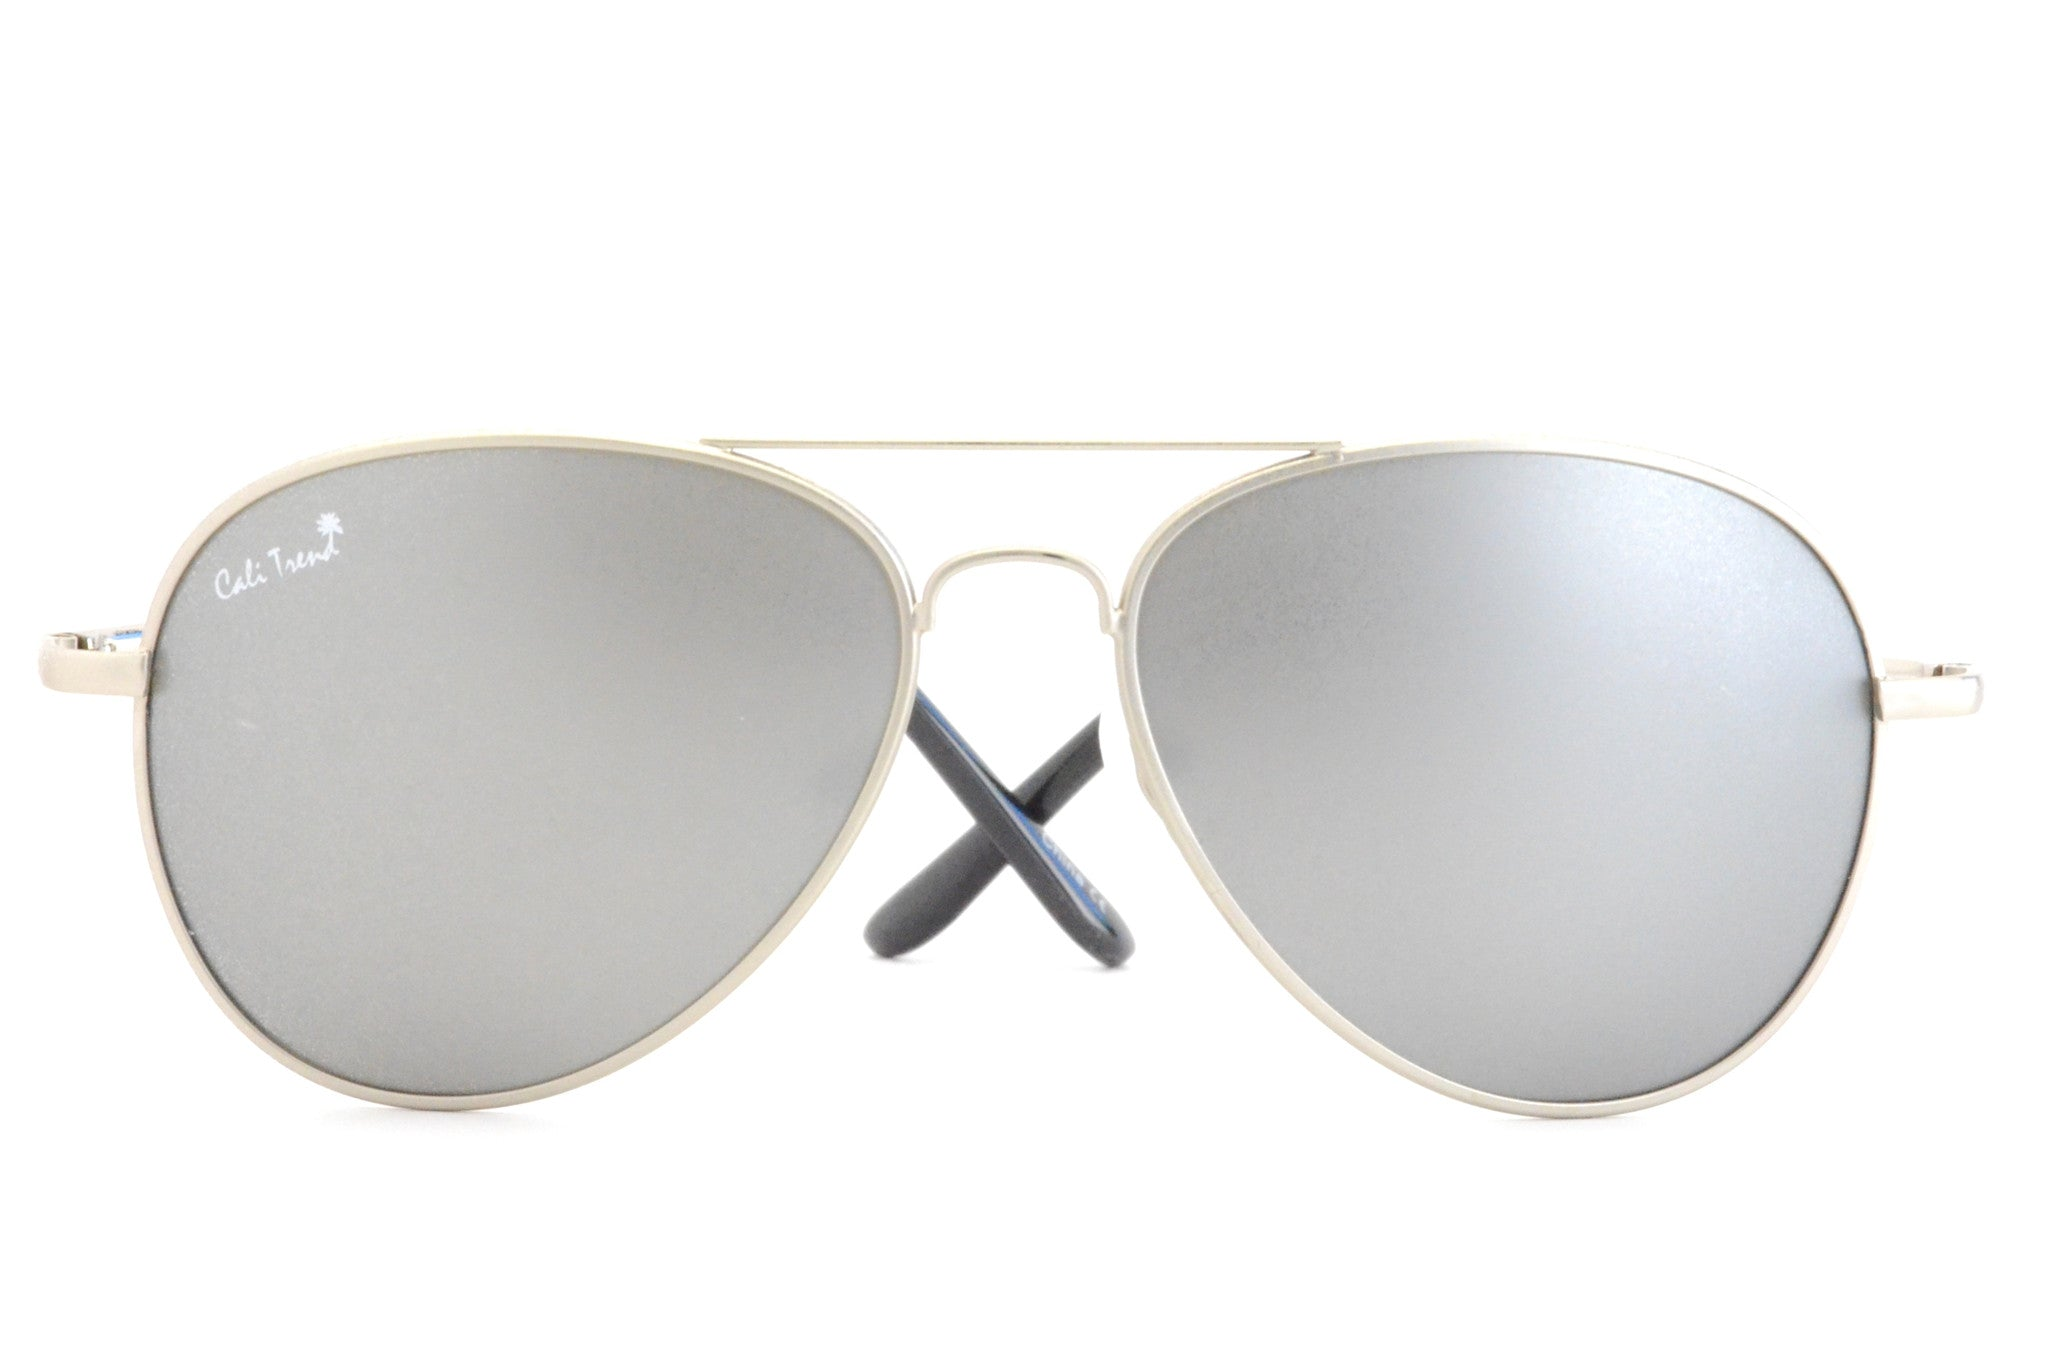 Polarized Silver Mirrored Aviator Sunglasses Metal Frame | Cali Trend